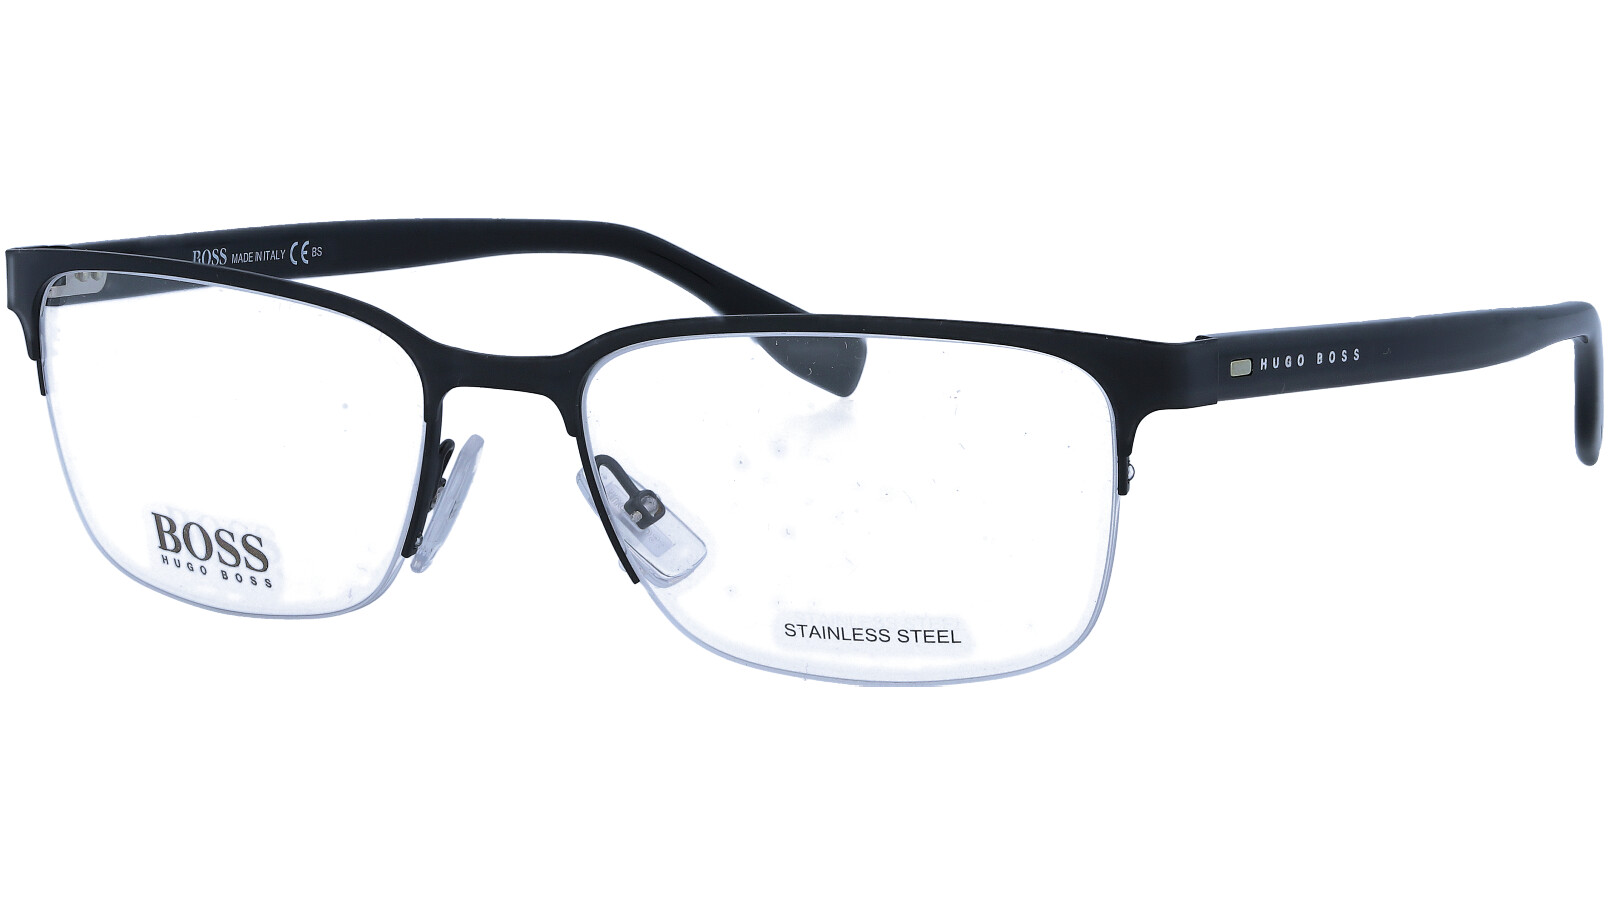 HUGO BOSS BOSS0682 10G 55 MTBLK Glasses